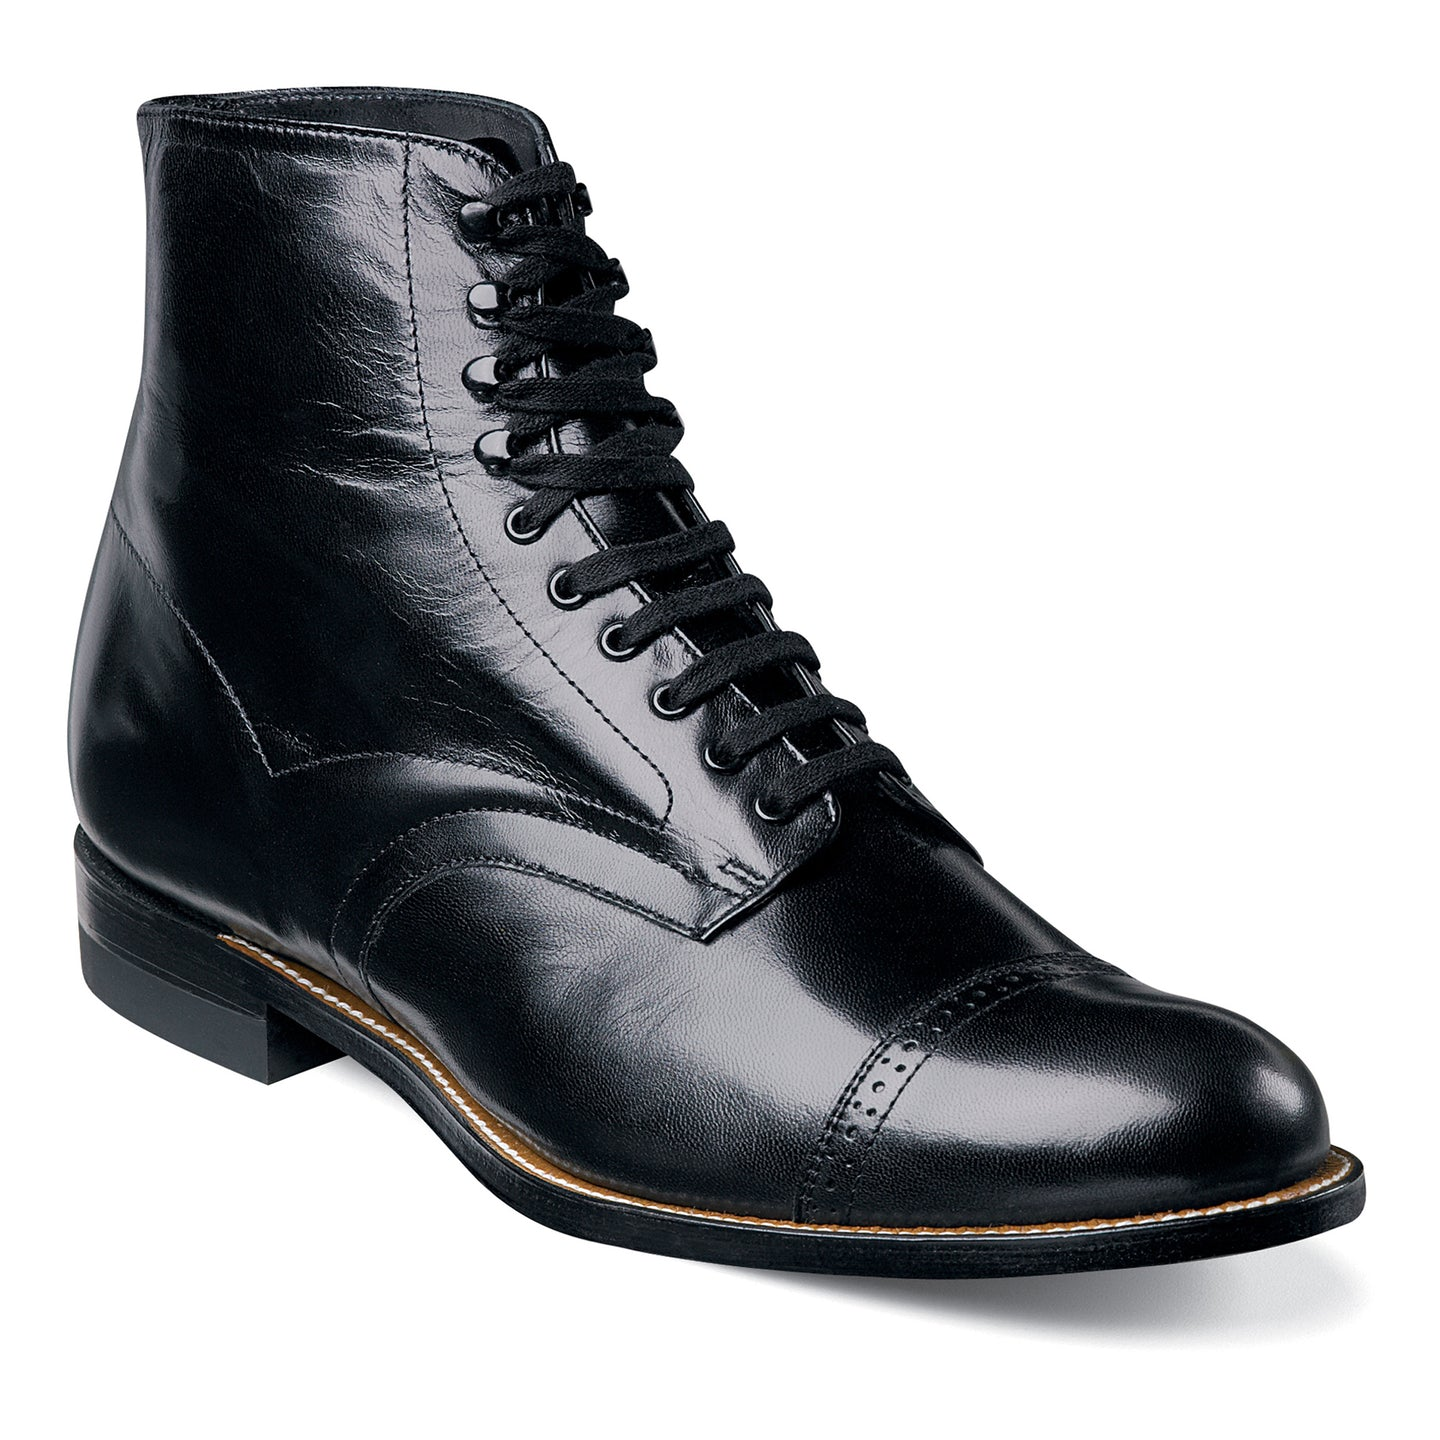 Stacy Adams Madison Cap Toe Boot